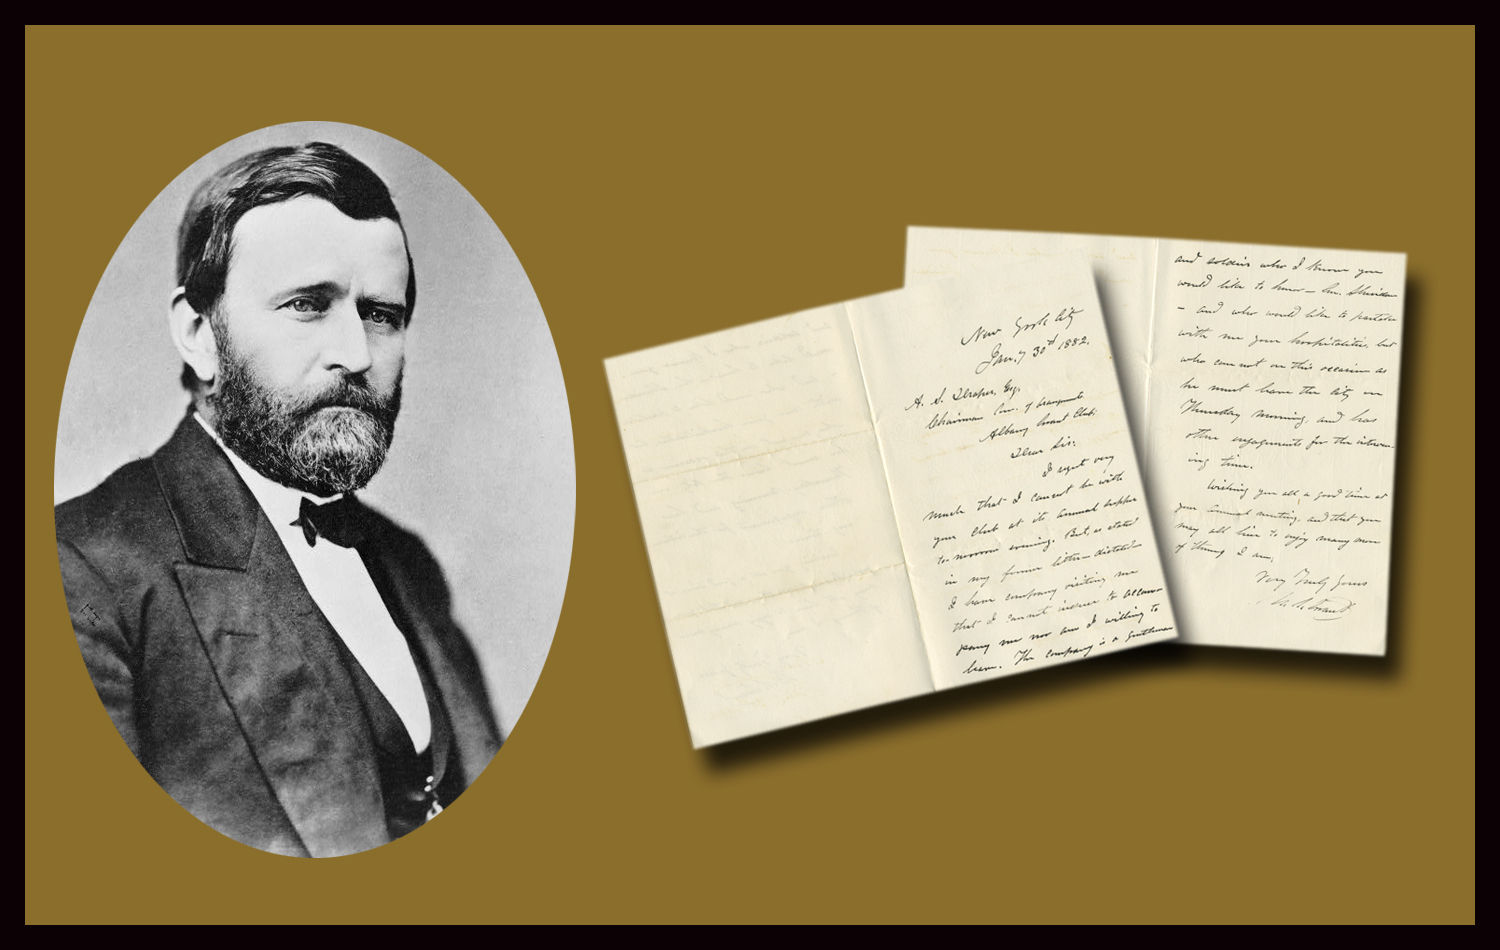 general grant meeting halpine How the north won has 76 ratings and 12 reviews sologdin said: very persuasive strictly a military history, from the opening of hostilities until the s.